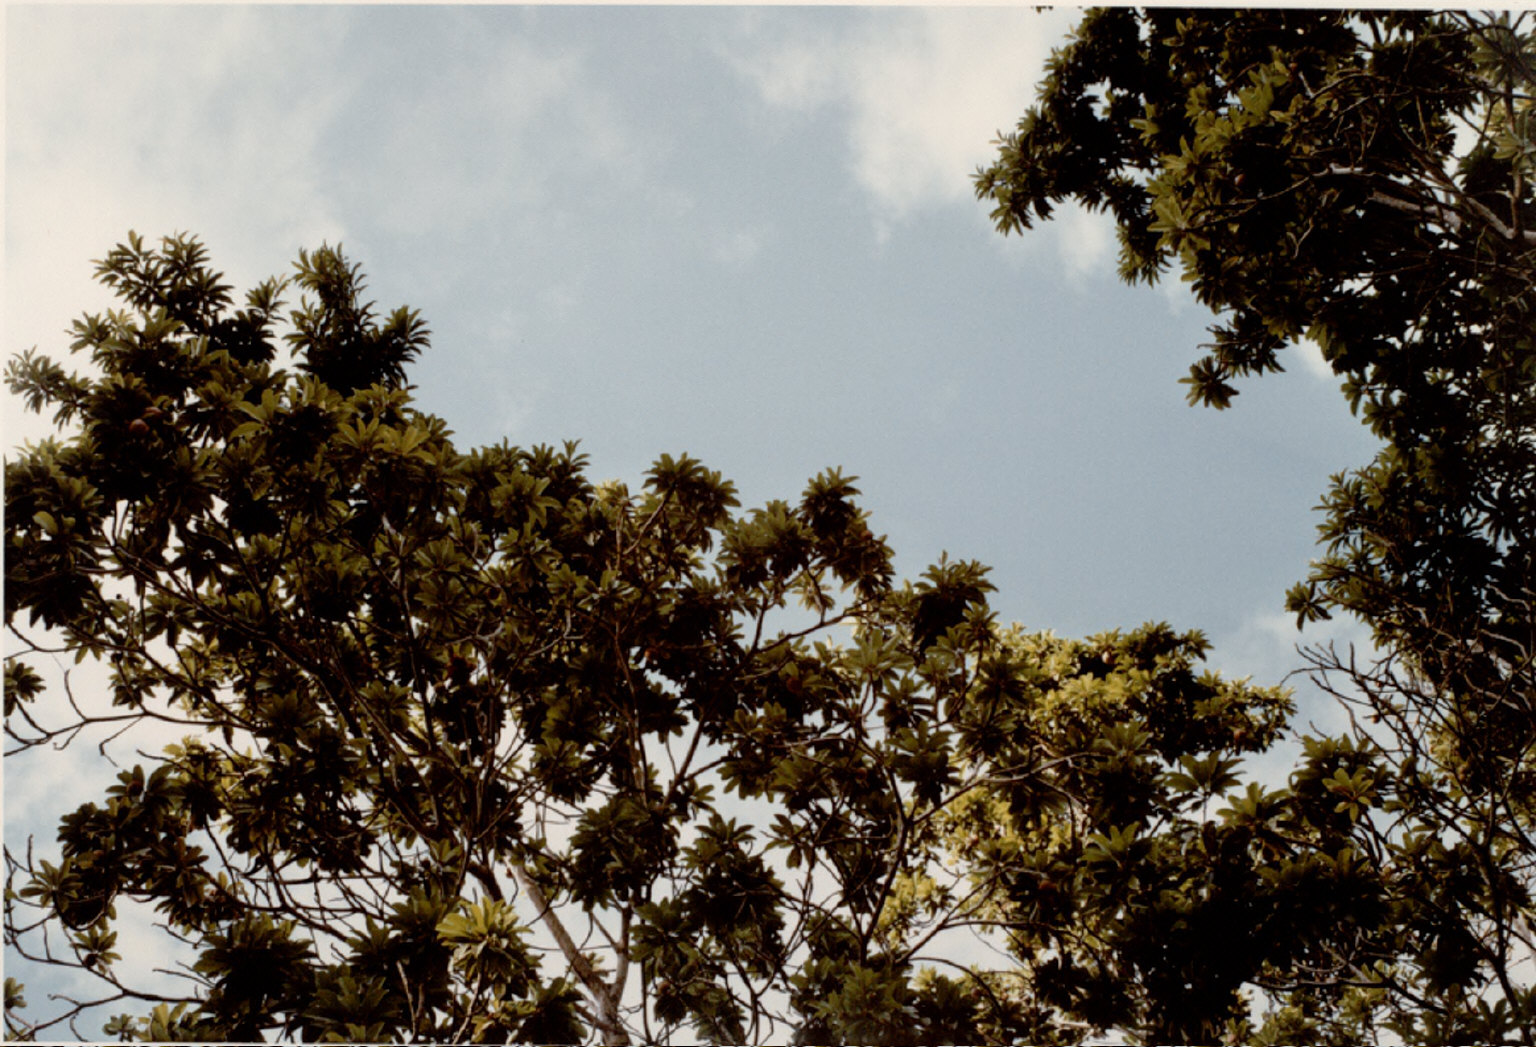 One of 33 photographs from the Jamaica Botanical series